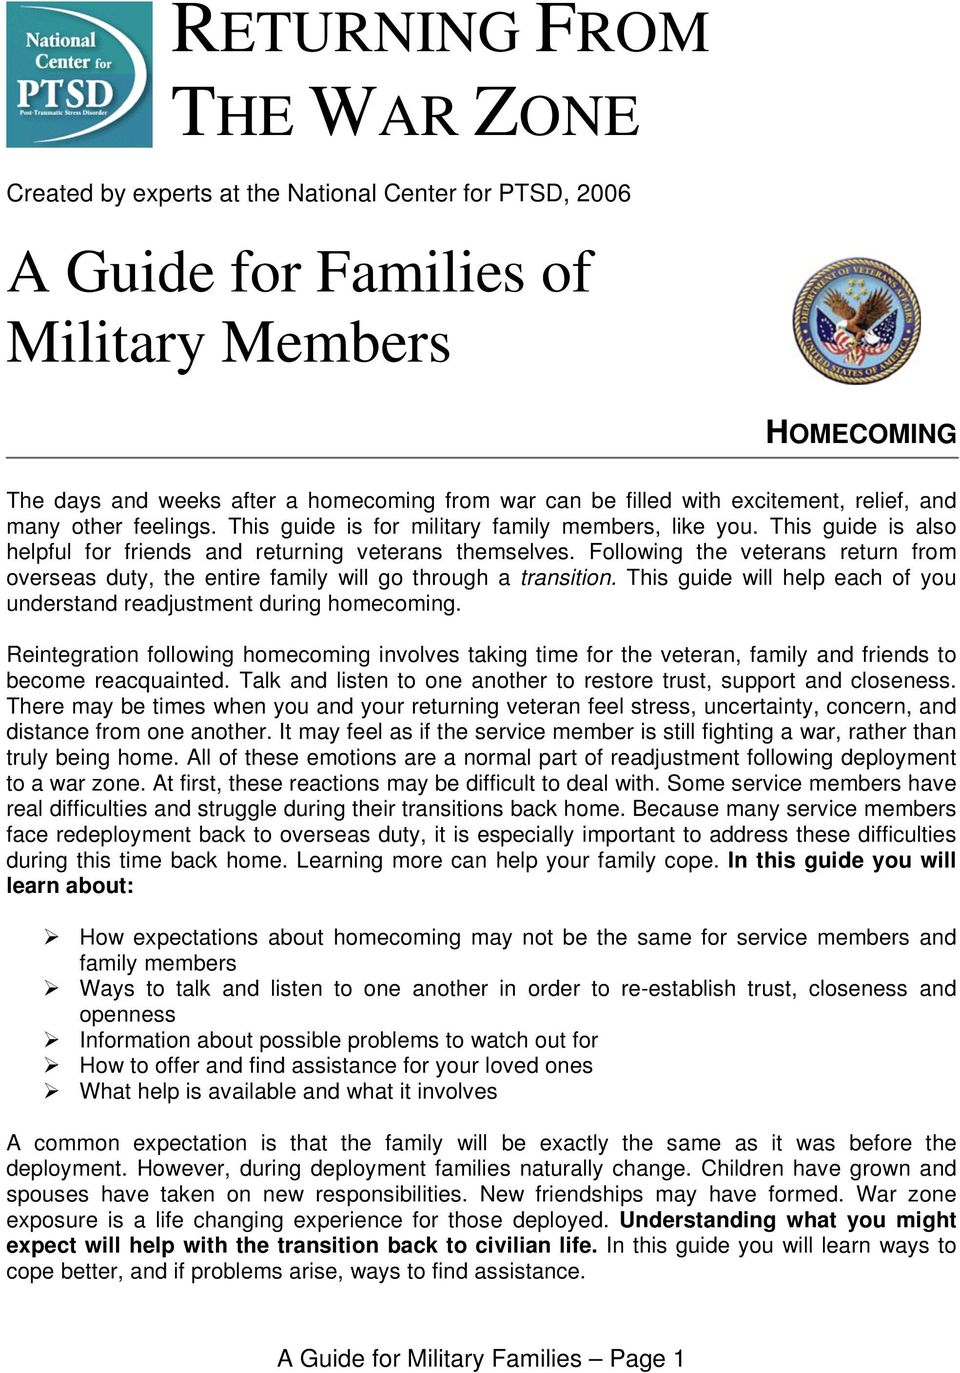 Following the veterans return from overseas duty, the entire family will go through a transition. This guide will help each of you understand readjustment during homecoming.